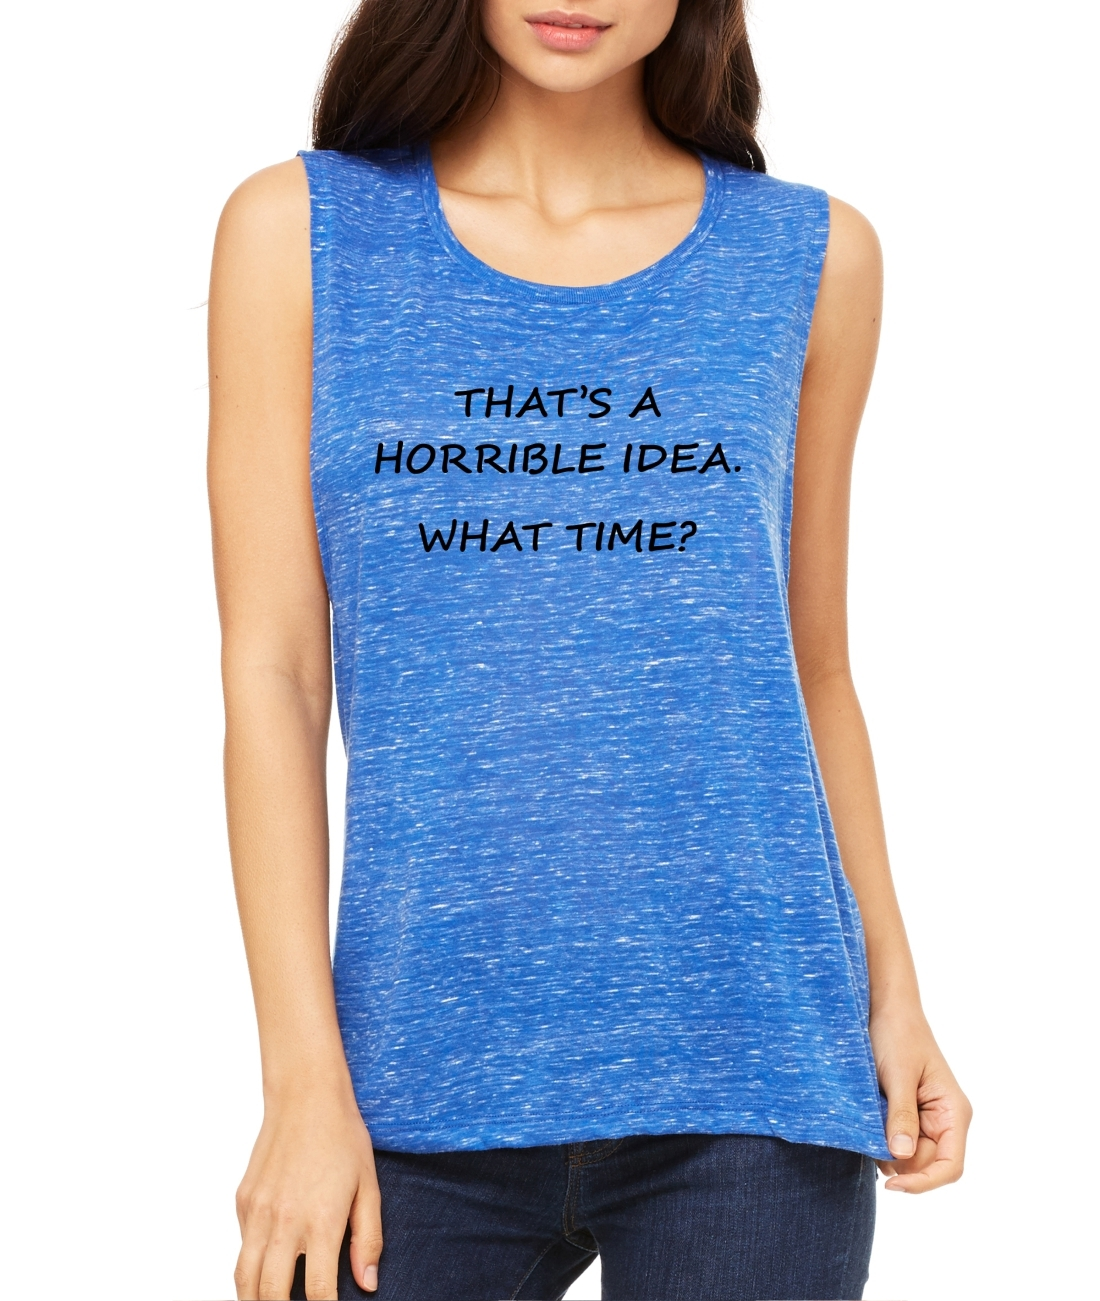 Primary image for Women's Flowy Muscle Top That's A Horrible Idea What Time